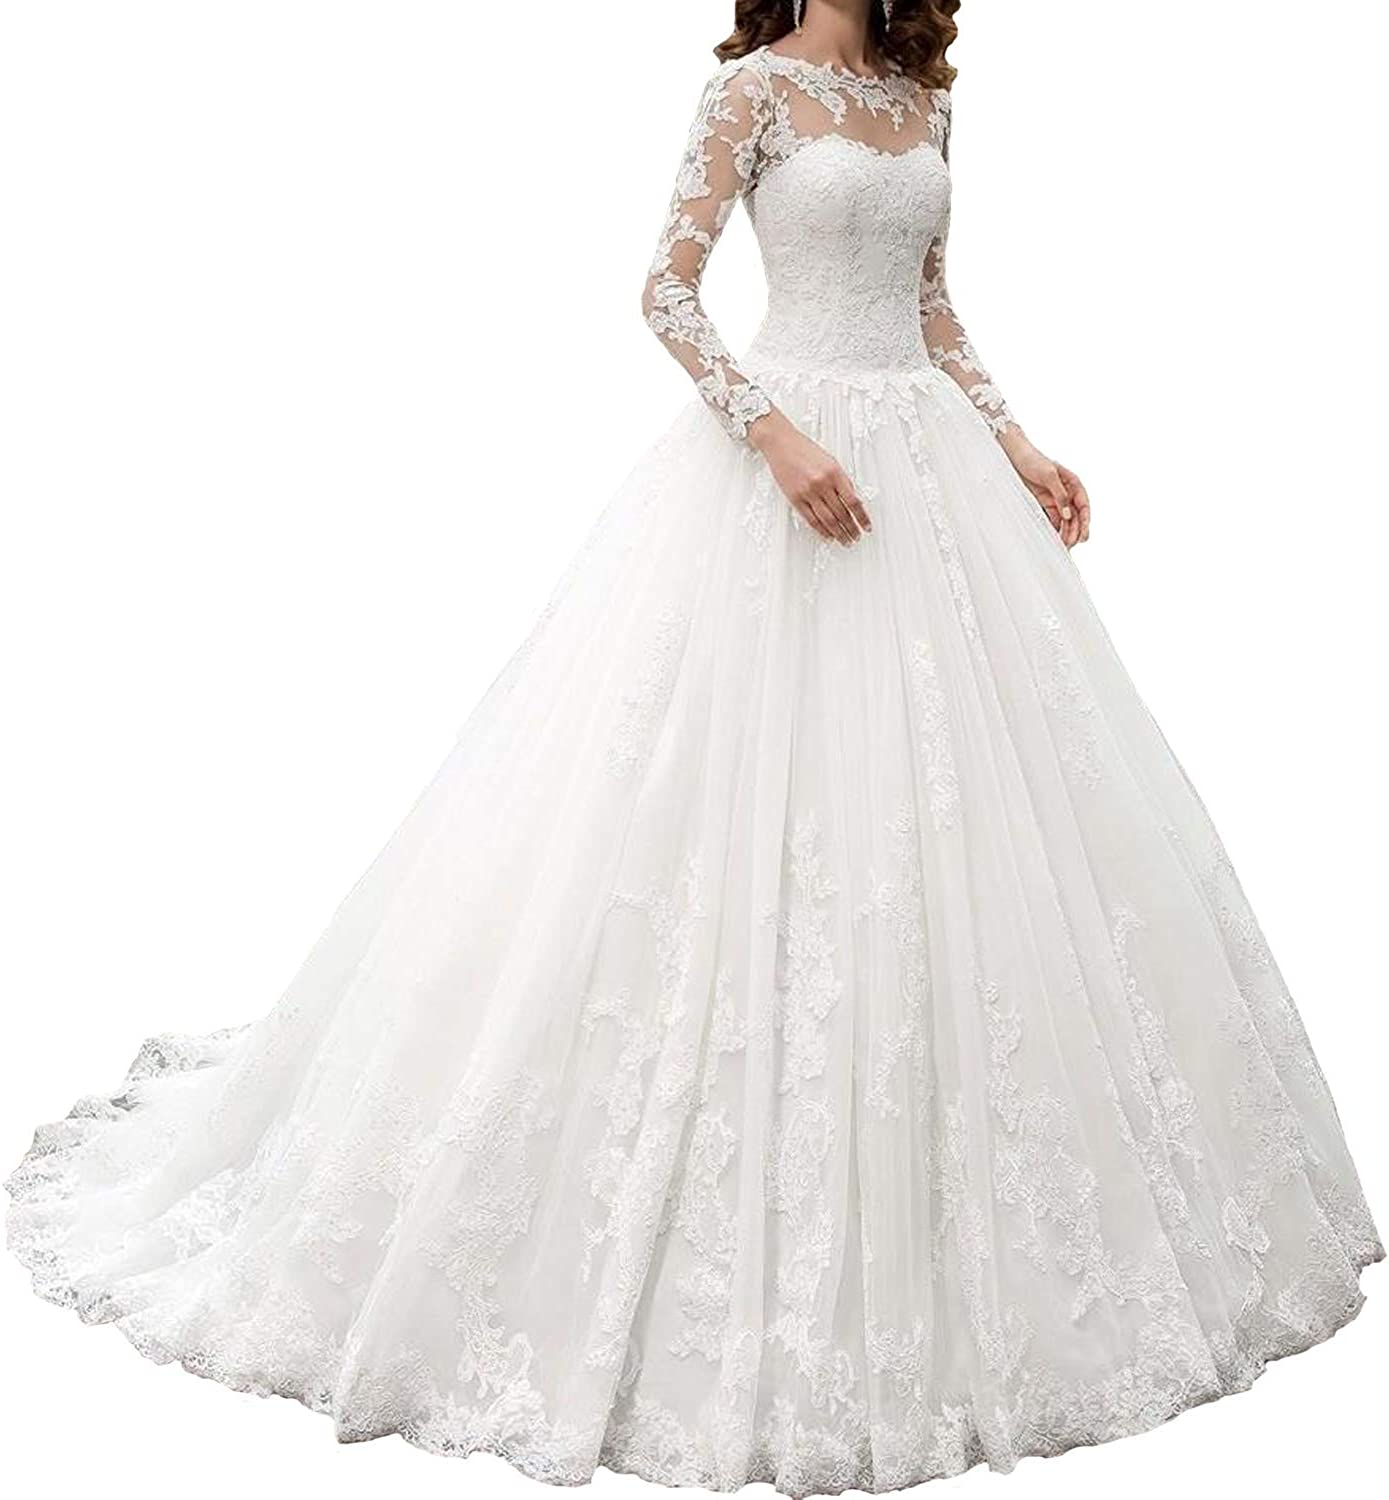 Fanao Women's A Line Wedding Dresses Long for Lace Super special ...